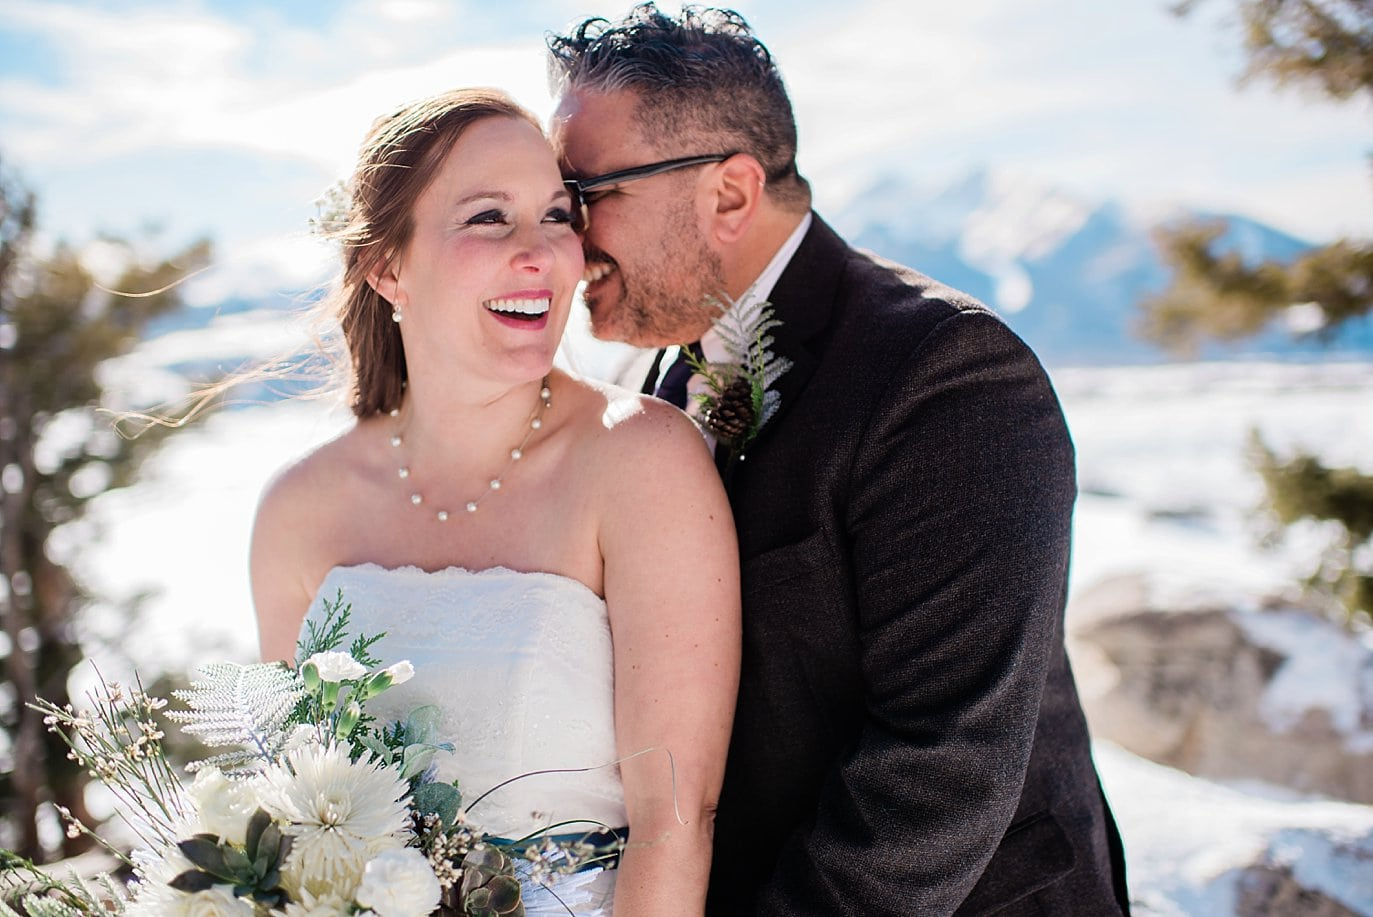 bride and groom intimate moment after ceremony at Sapphire Point Elopement by Vail wedding photographer Jennie Crate Photographer